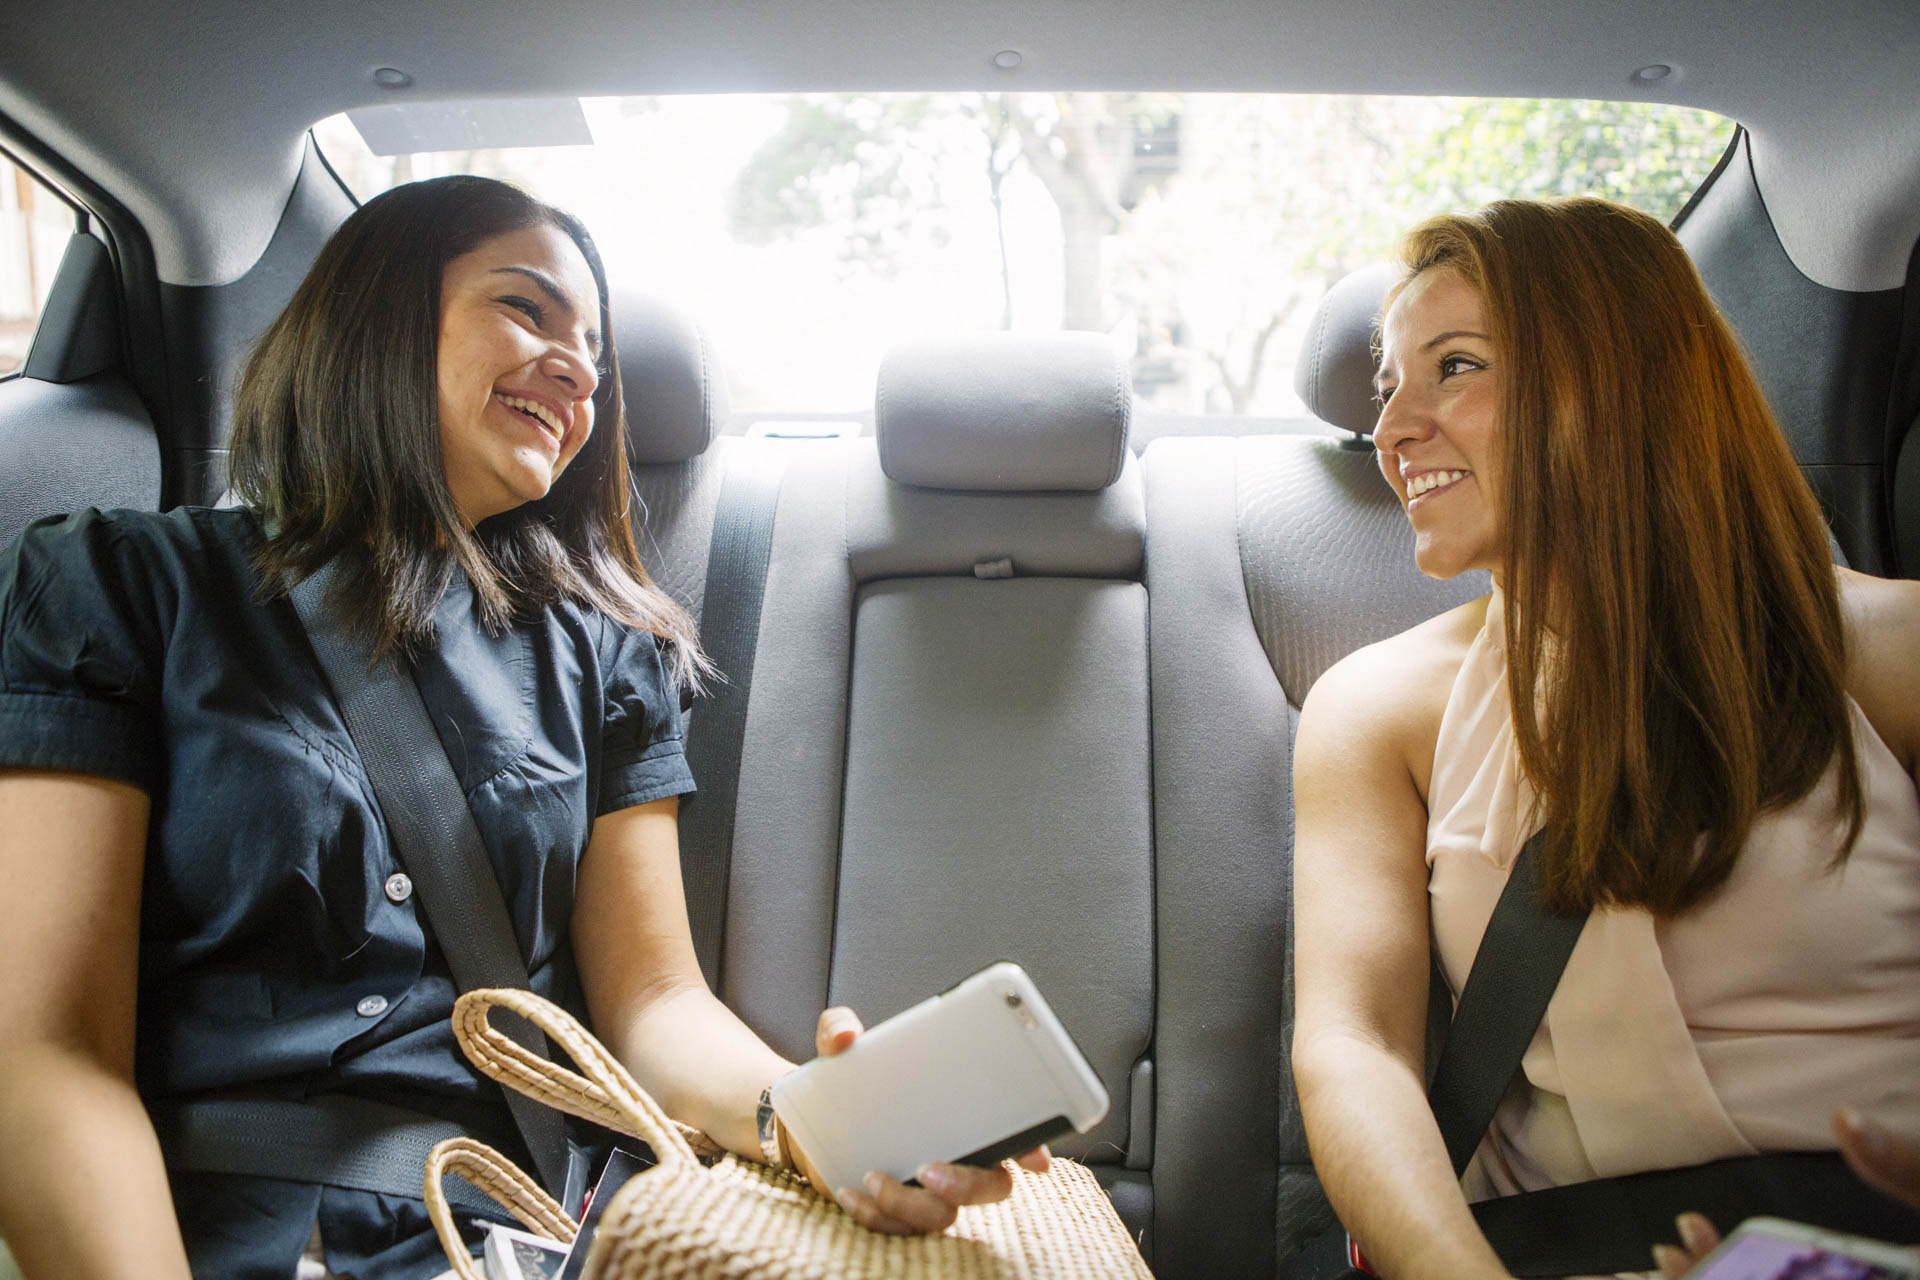 Uber exploring low-price 'Express POOL' service to SFO amid national expansion